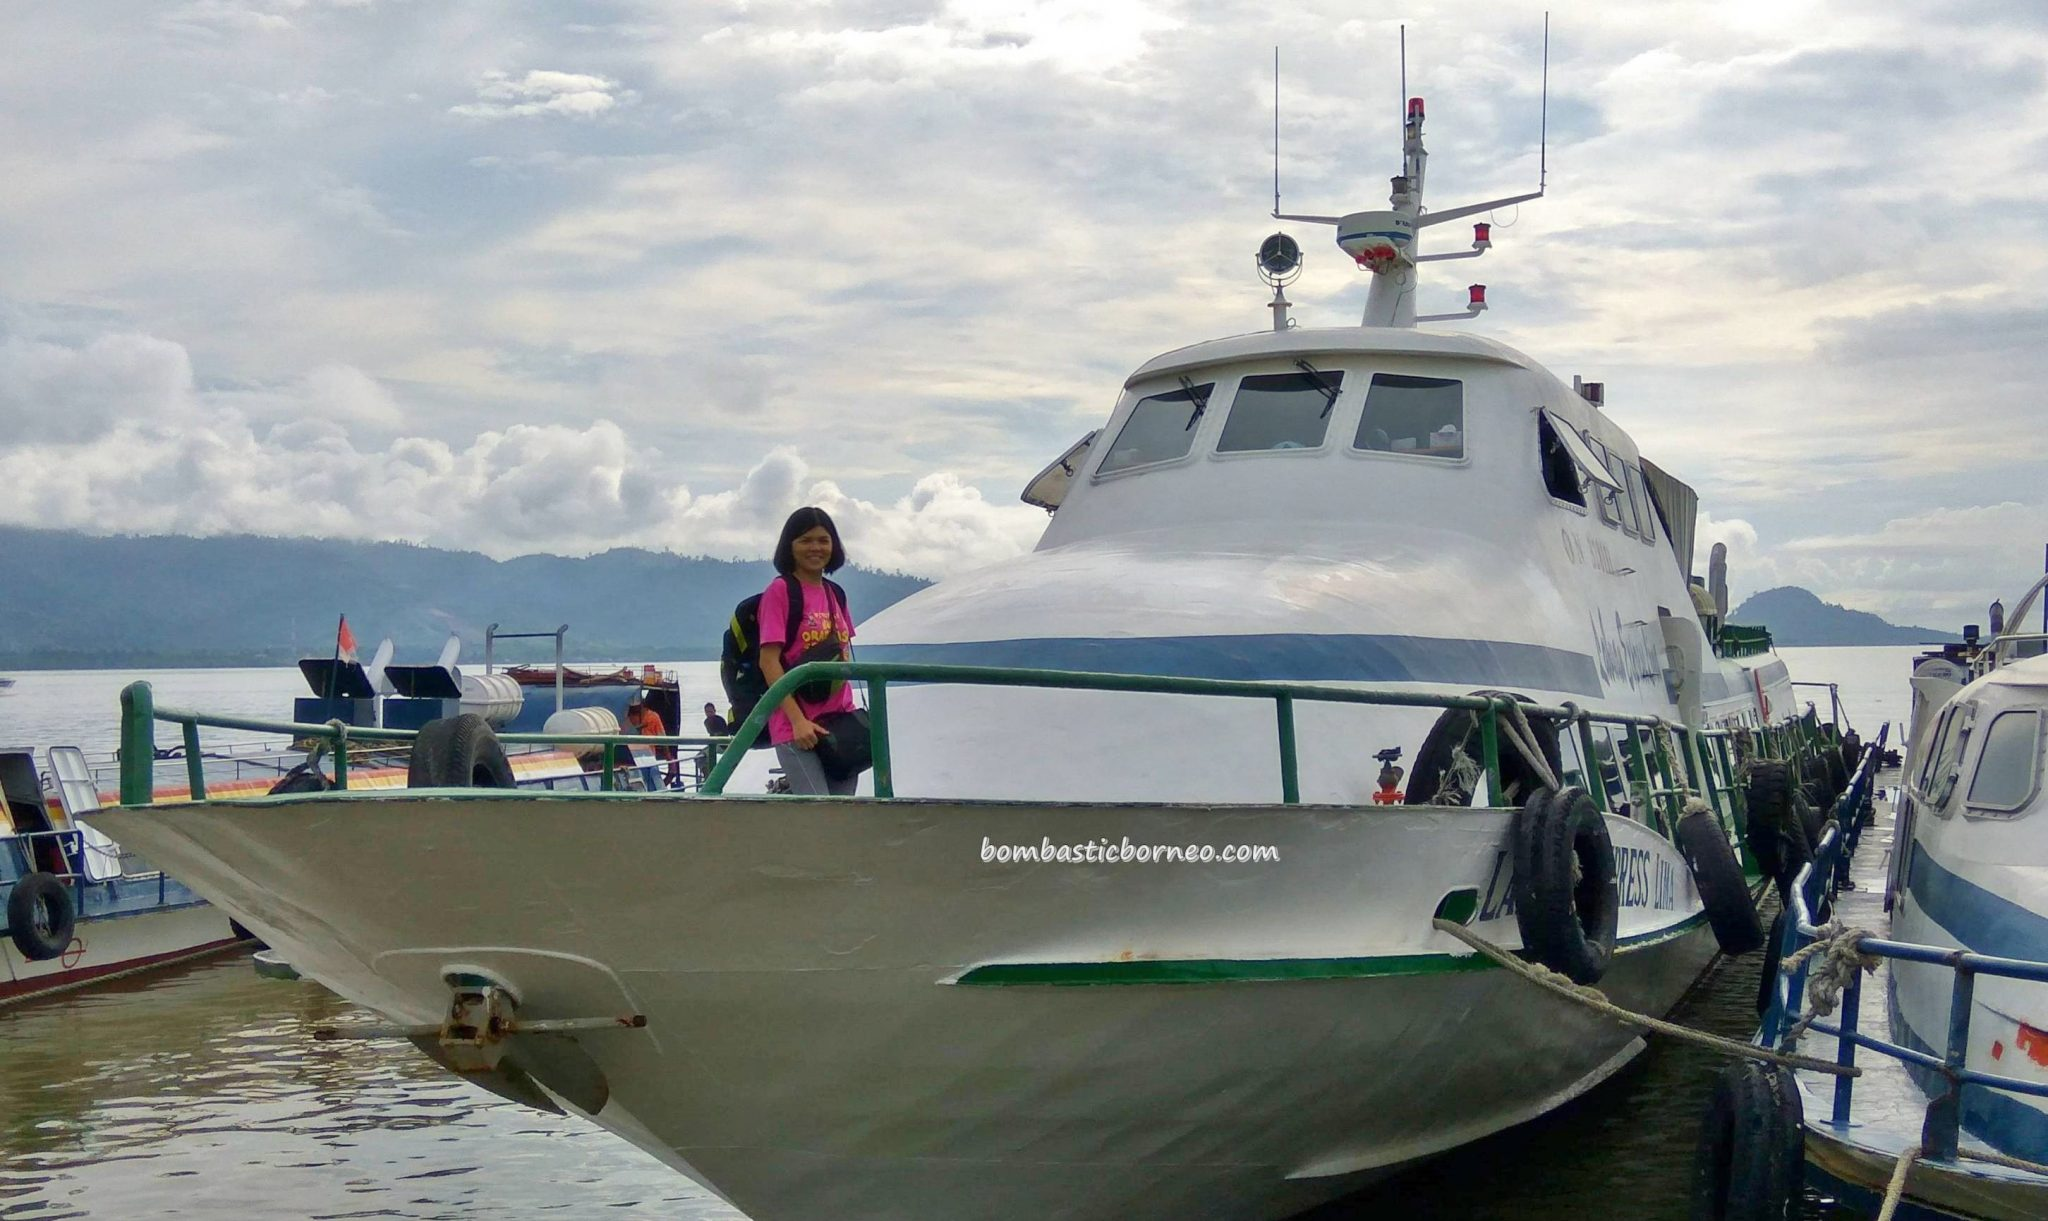 Kapal Laut, port, wharf terminal, Transportation, Immigration checkpoint, exploration, Borneo, Kalimantan Utara, Tawau, Tourism, tourist attraction, travel guide, International Border crossing, transborder, 北加里曼丹, 婆罗洲,